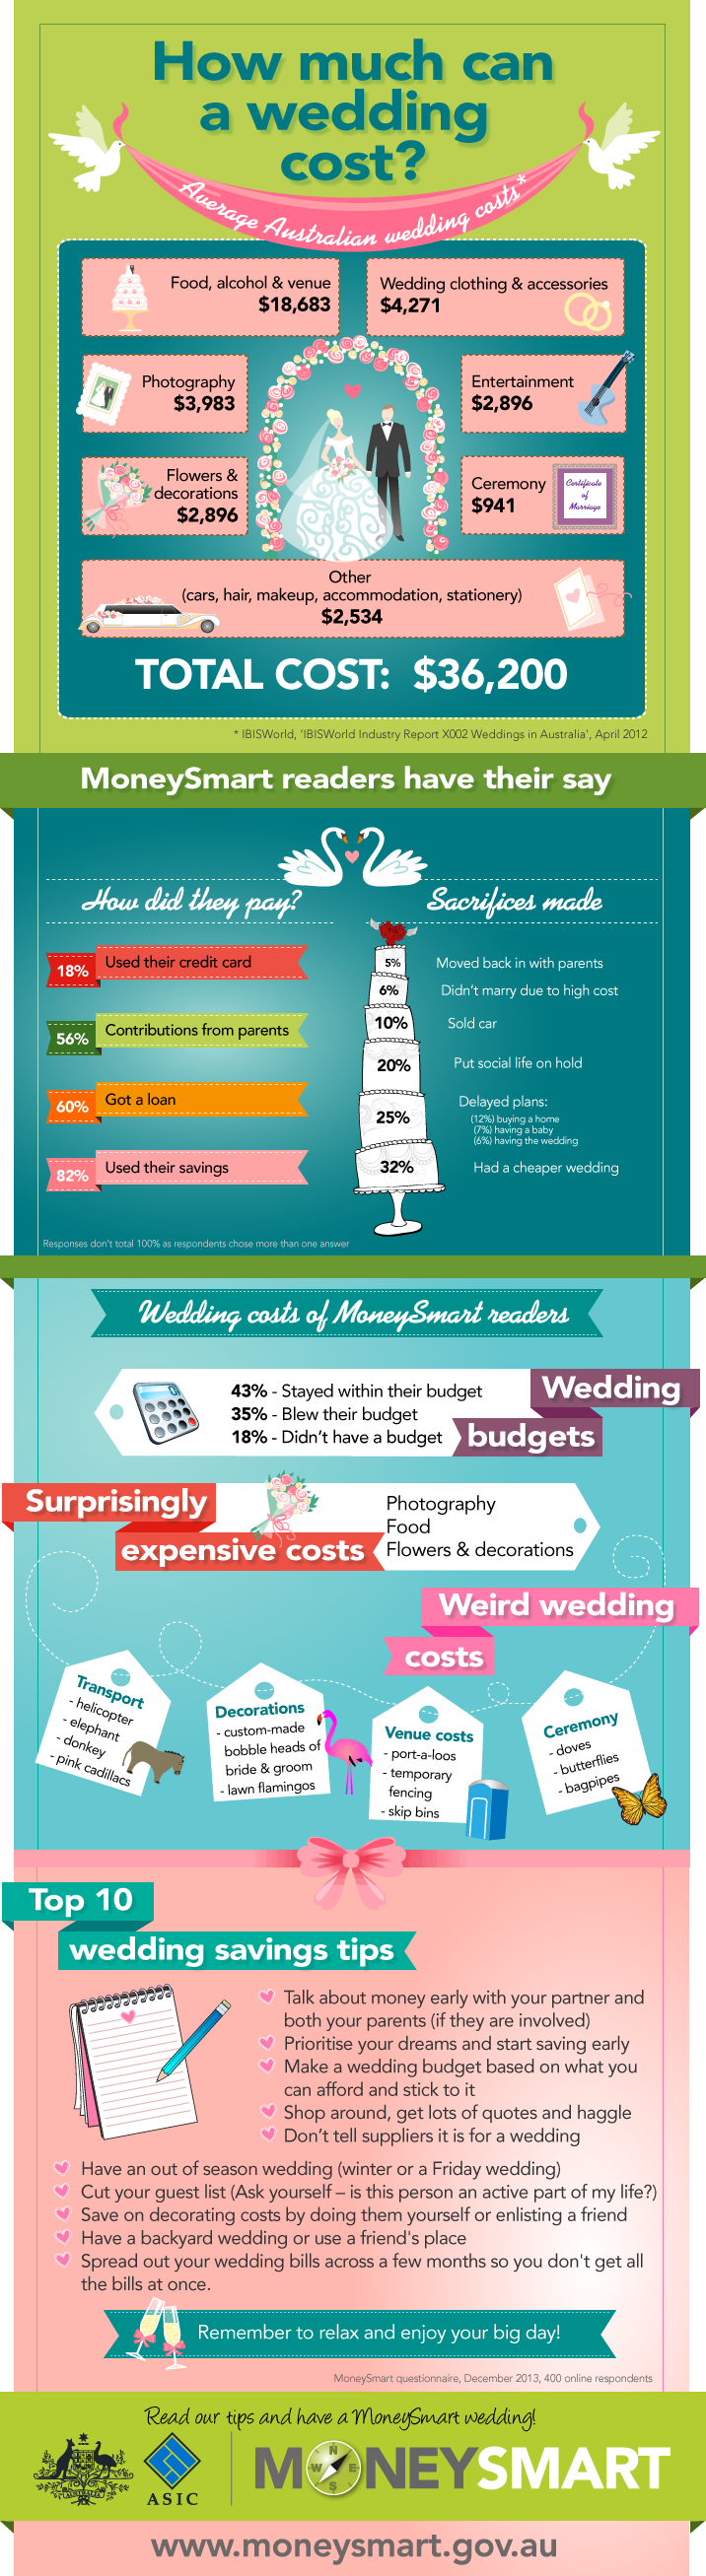 How much can a wedding cost?